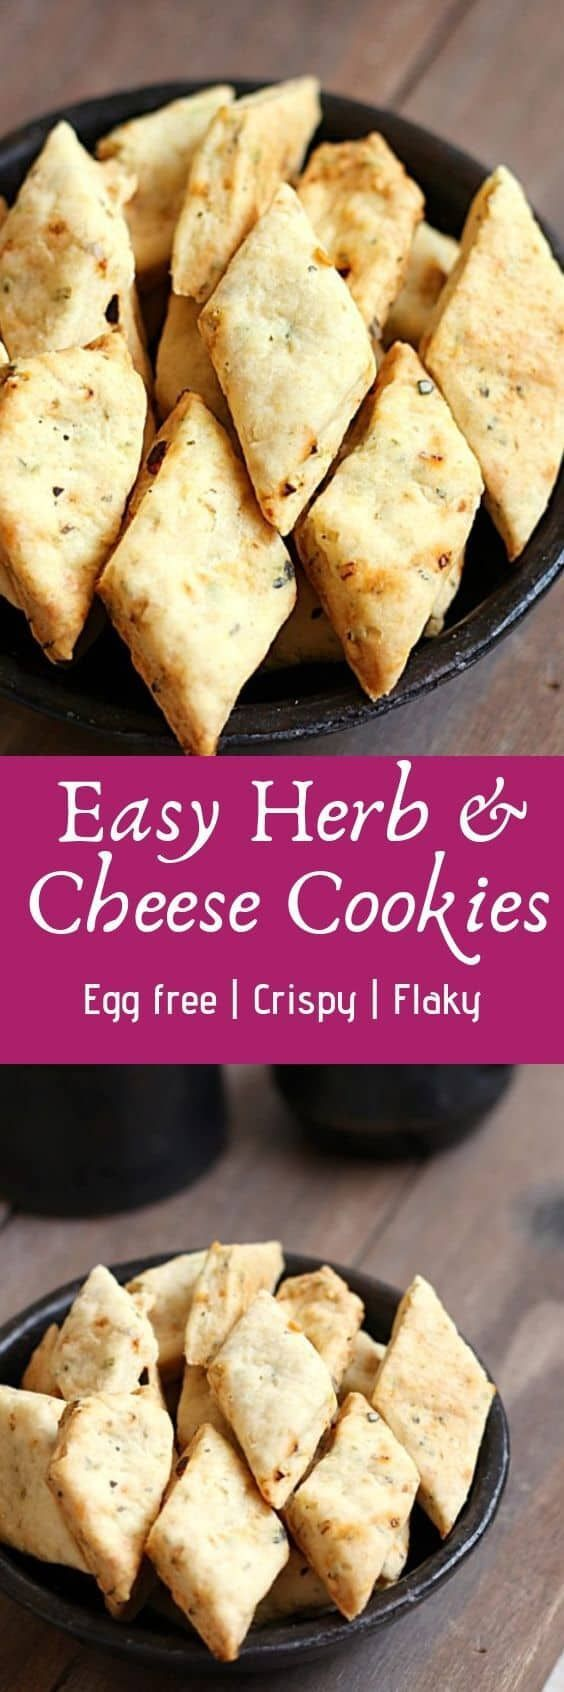 Herb and cheese cookies recipe with step by step photos. Sharing a very easy to make crispy, crunchy and cheesy cookies flavored with dried herbs. Recipe via and cheese cookies recipe with step by step photos. Sharing a very easy to make crispy, crunchy and cheesy cookies flavored with dried herbs. Recipe via